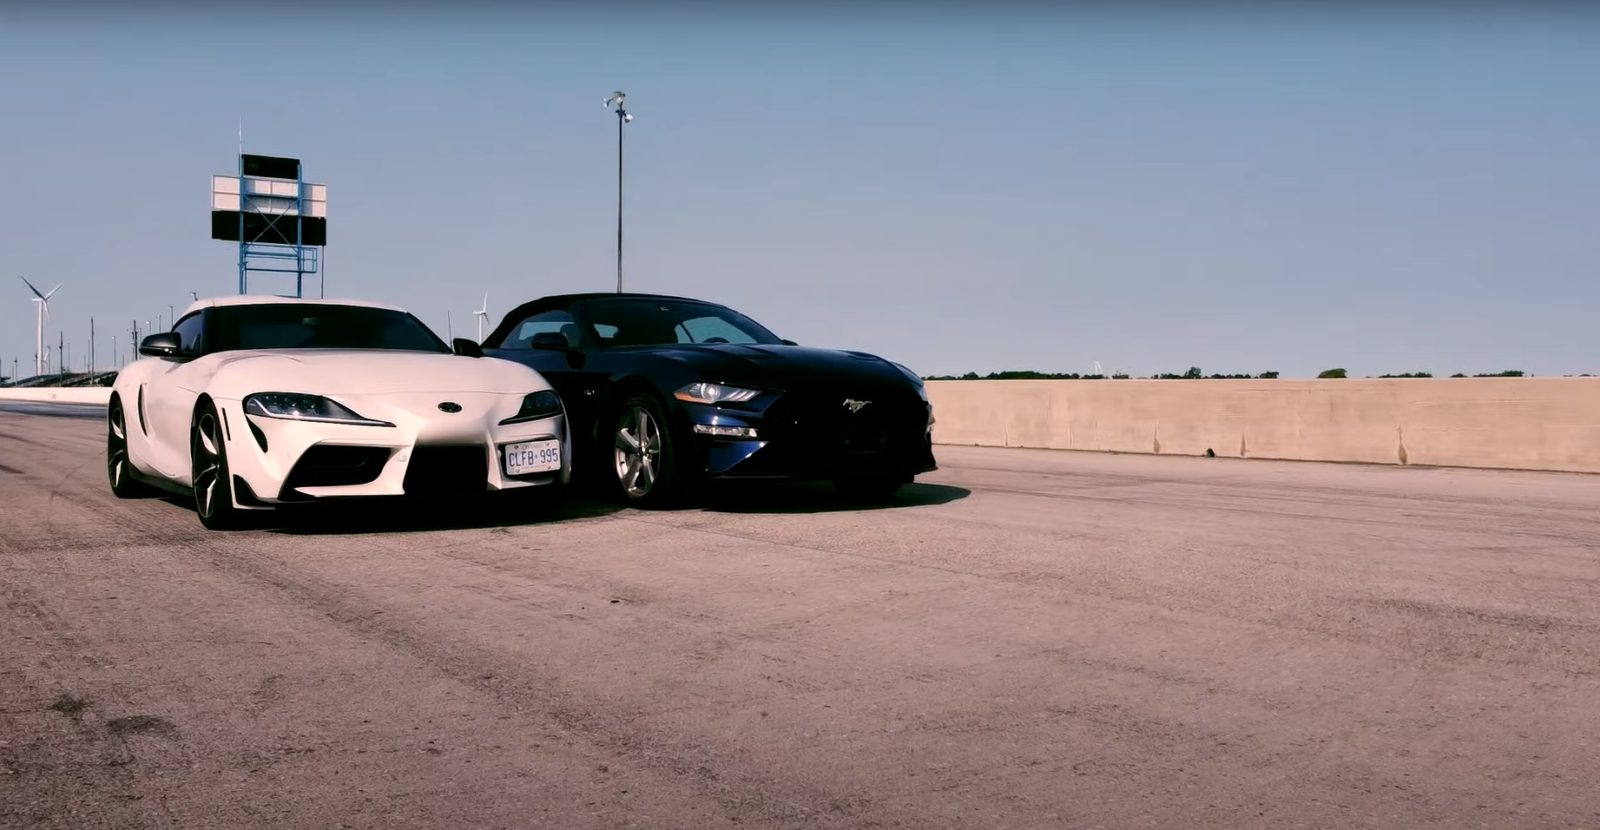 2019-ford-mustang-gt-convertible-10-speed-races-toyota-supra-gr,-v8-power-disappoints